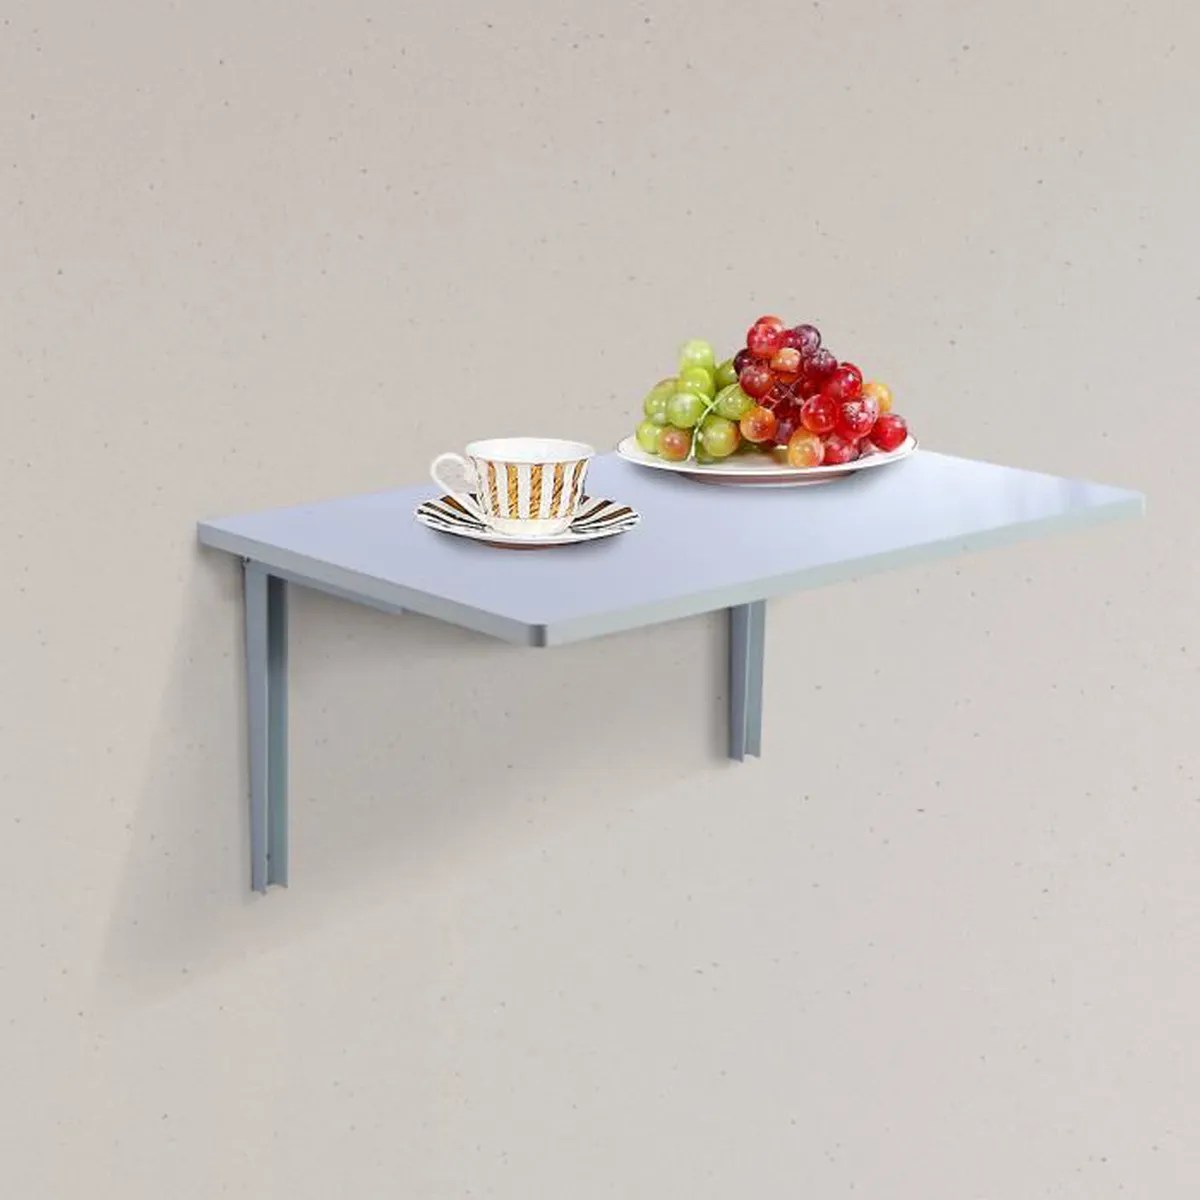 Fabriquer Table Rabattable Trendy Interesting Fabriquer Table Murale Rabattable With